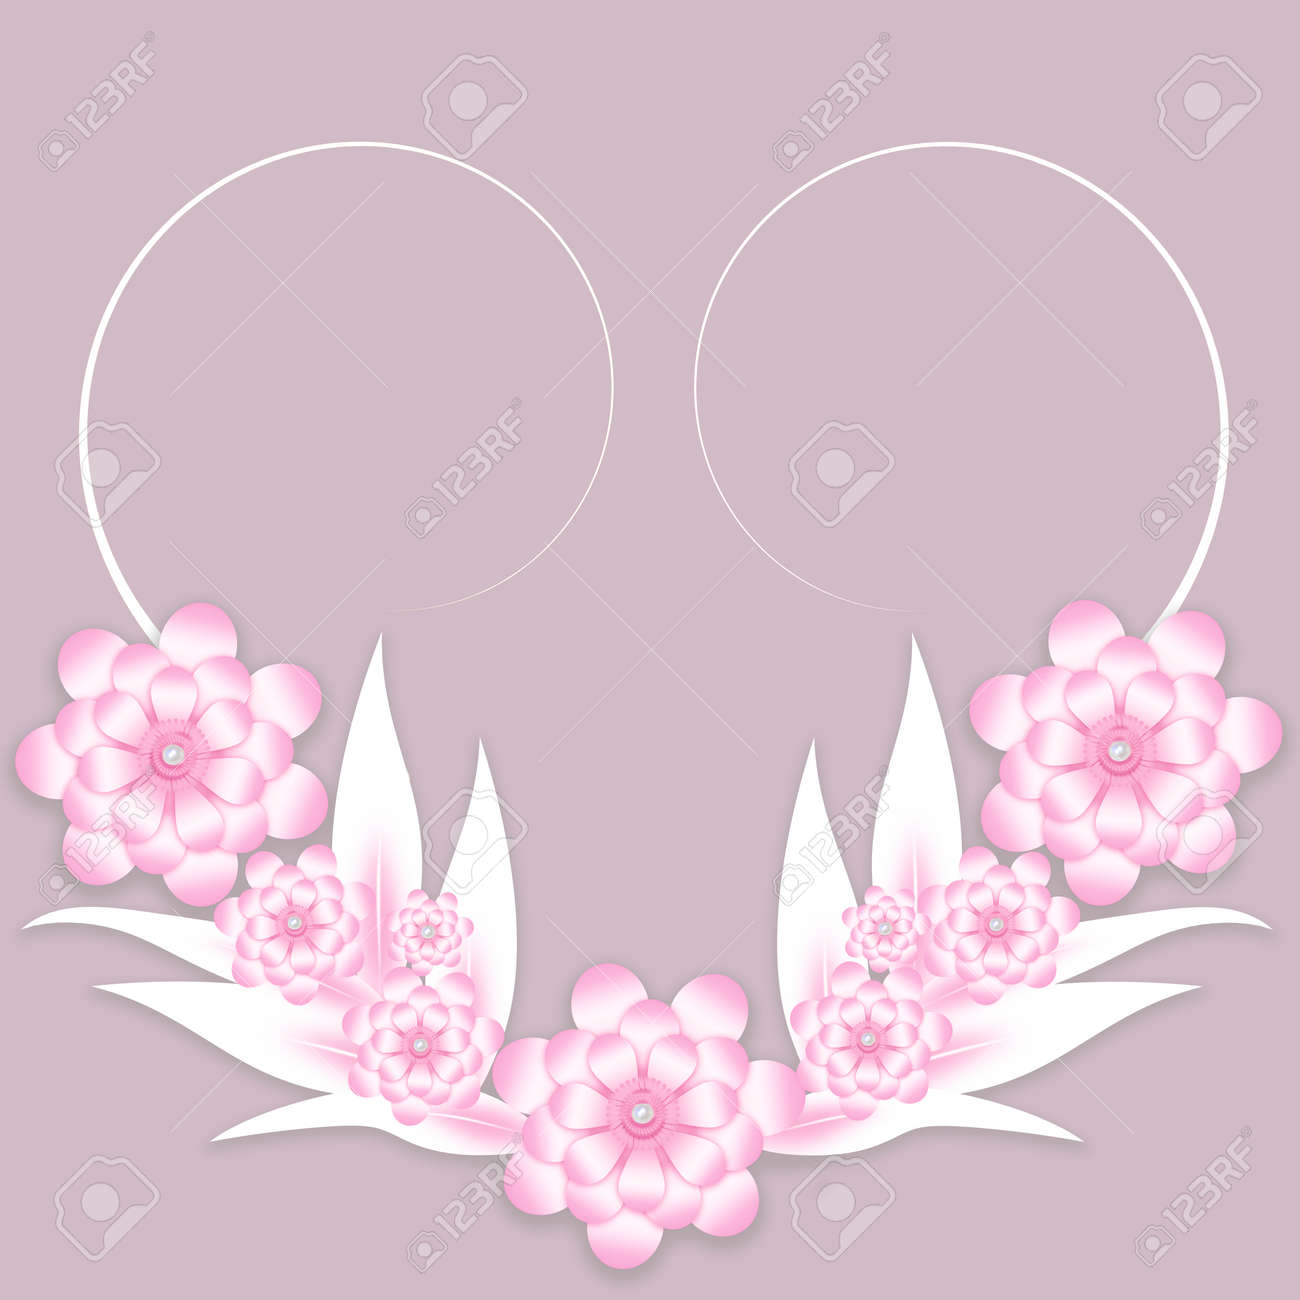 Pink And White Paper Flowers Background For Wedding Invitation